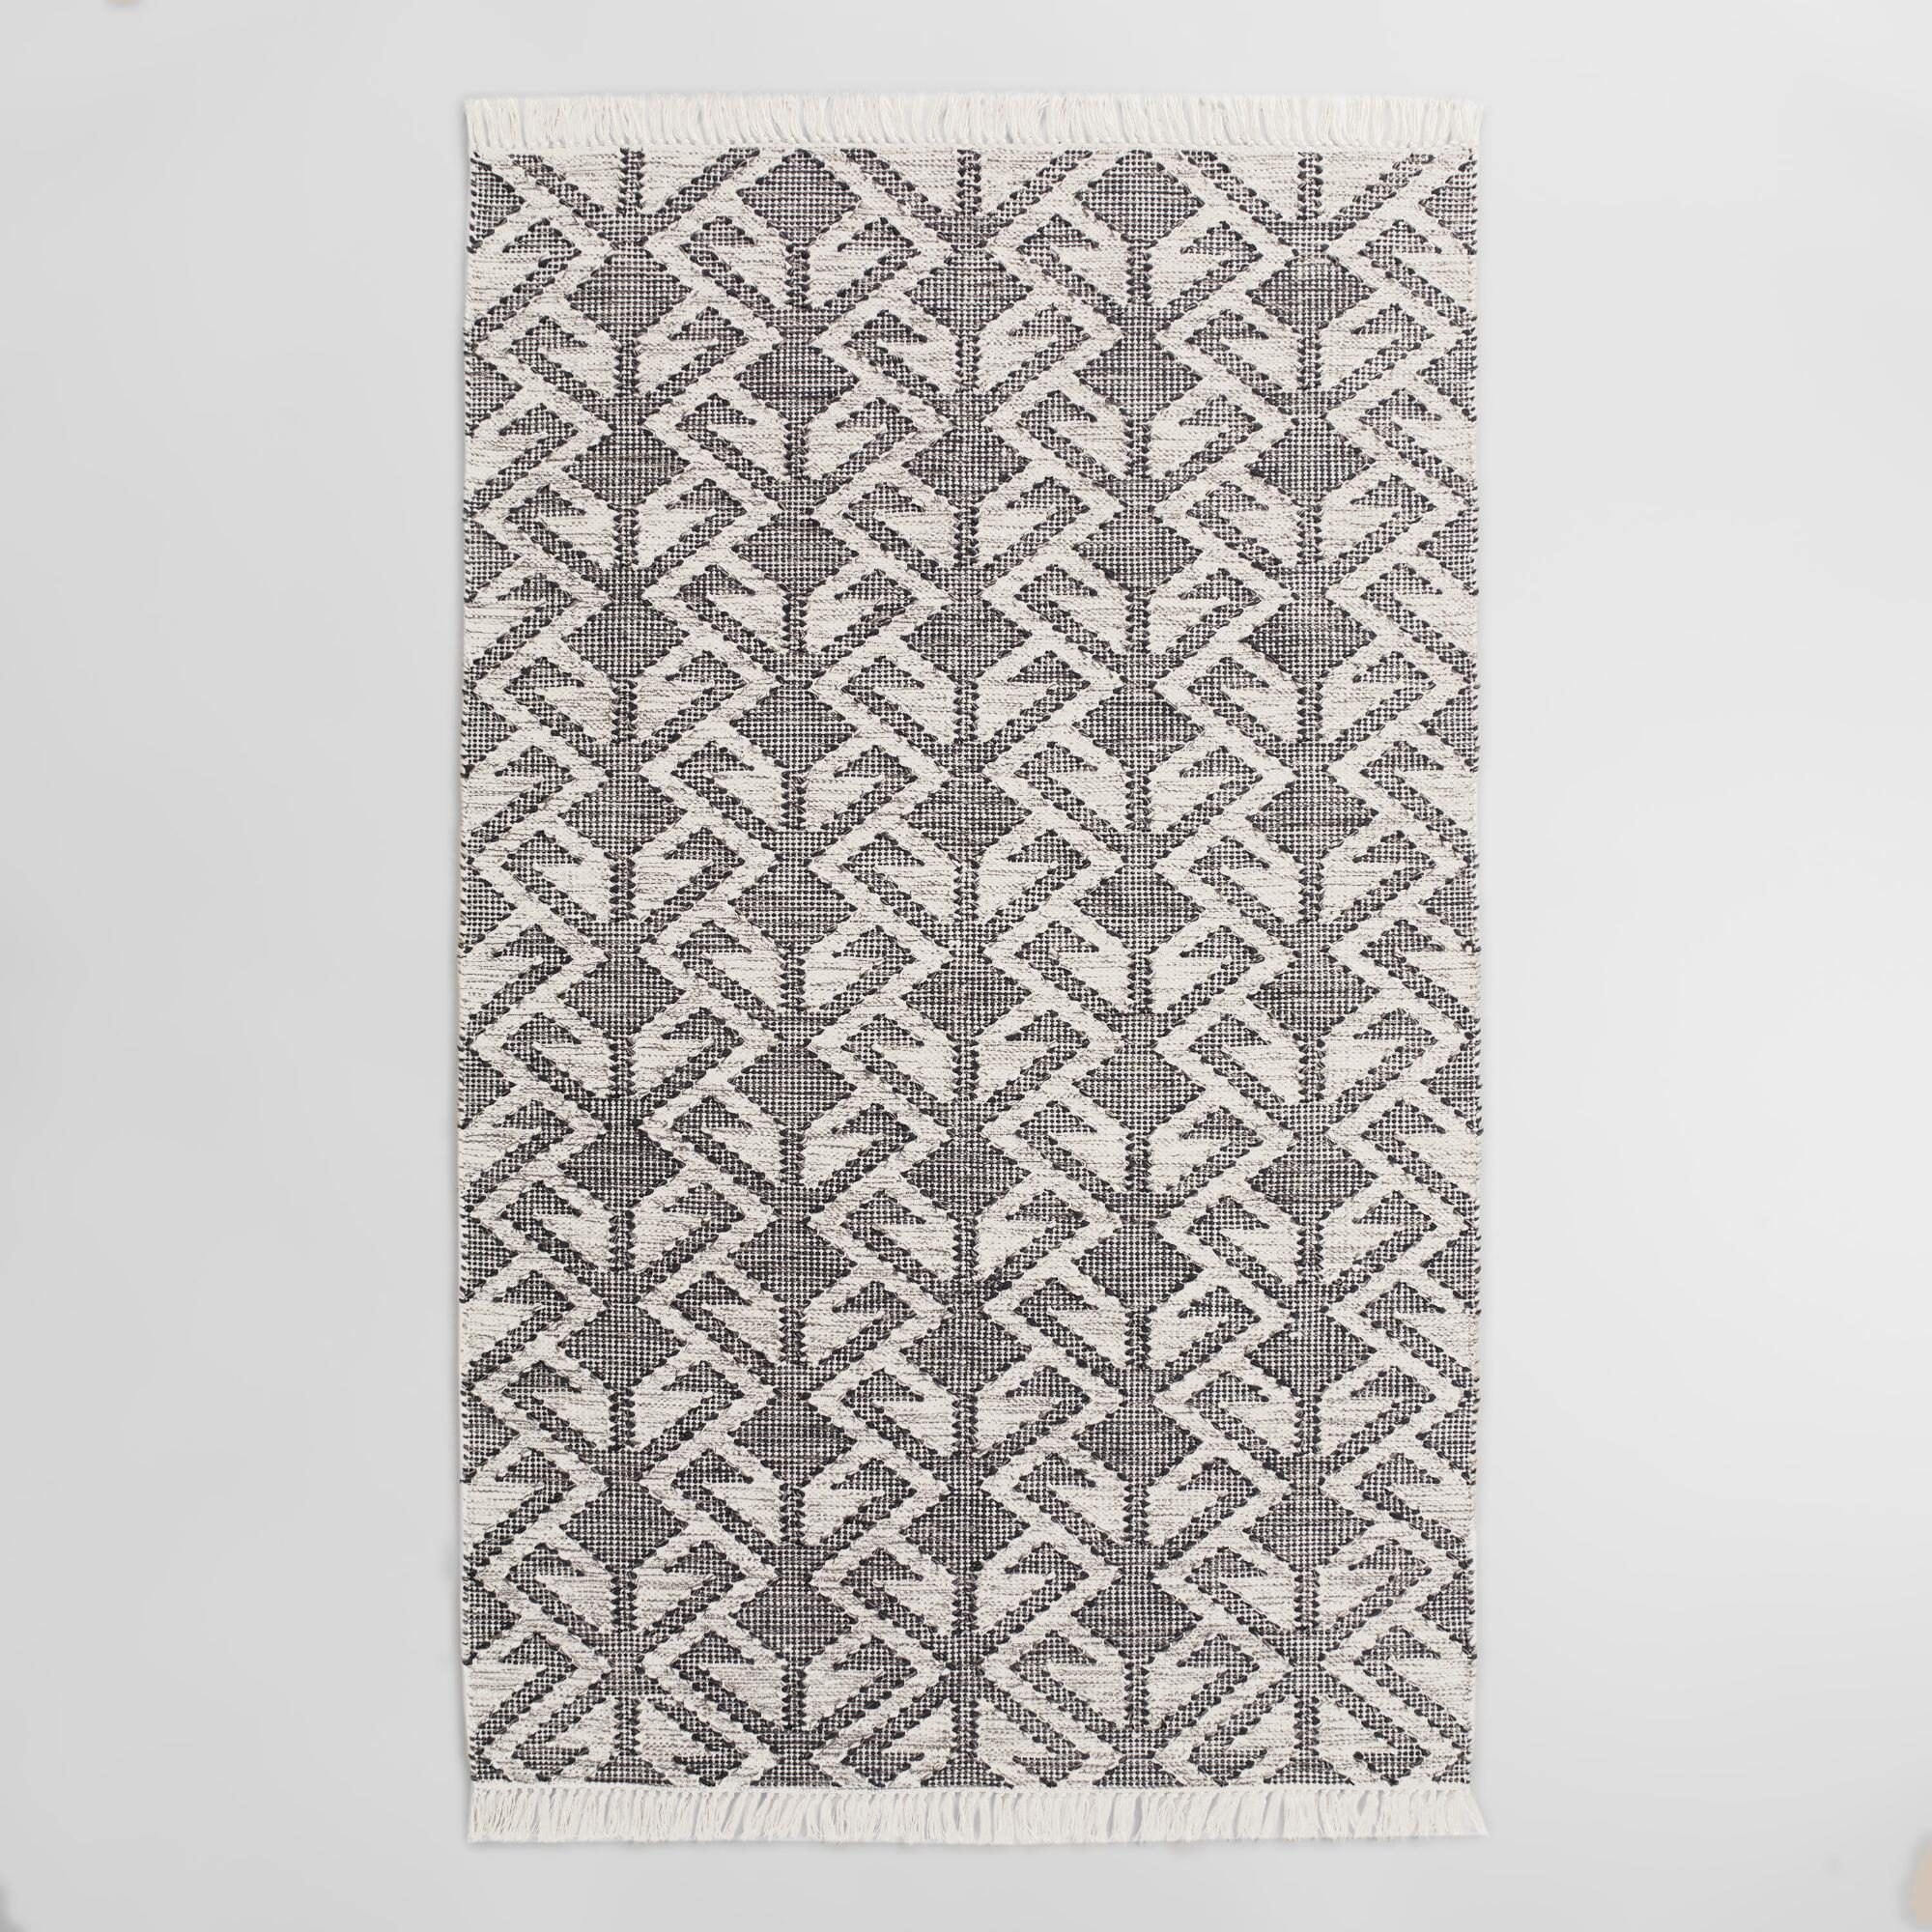 Black Graphic Woven Emerson Indoor Outdoor Patio Area Rug - Polyester - 5' x 8' by World Market 5Ftx8Ft